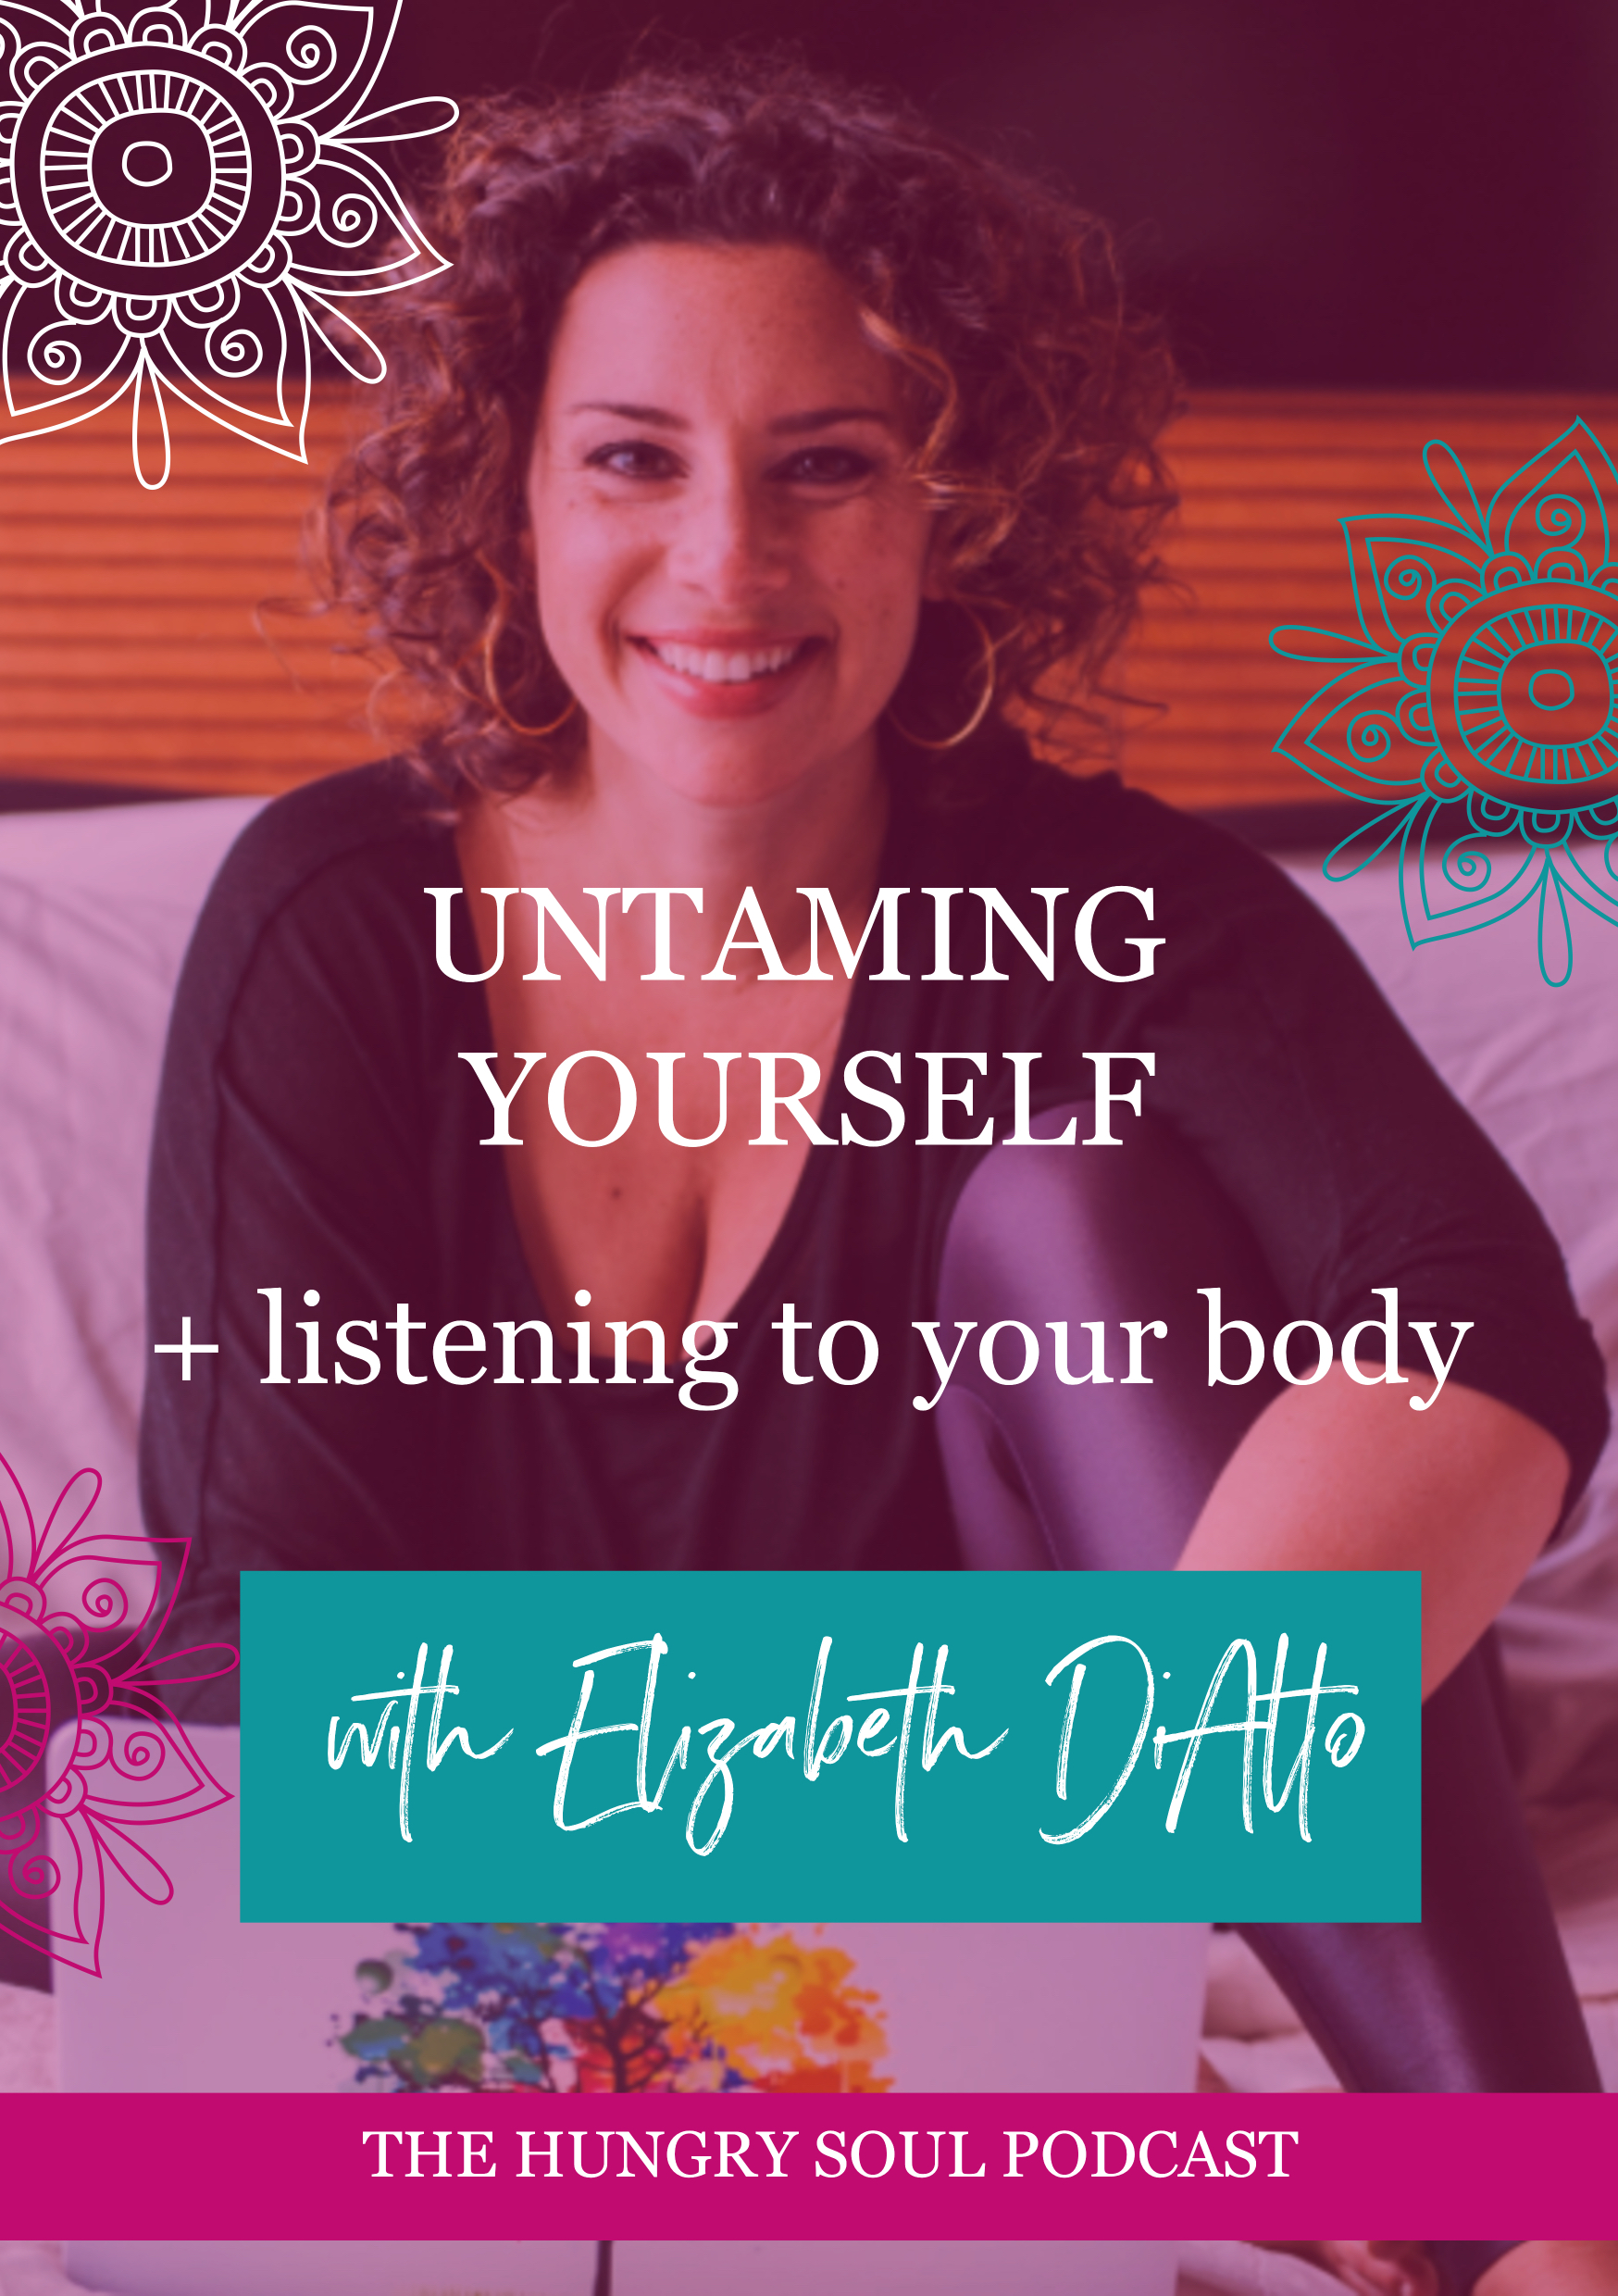 The Hungry Soul host Rachel Foy interviews Elizabeth DiAlto on listening to our body, owning our desires and understanding our intuition